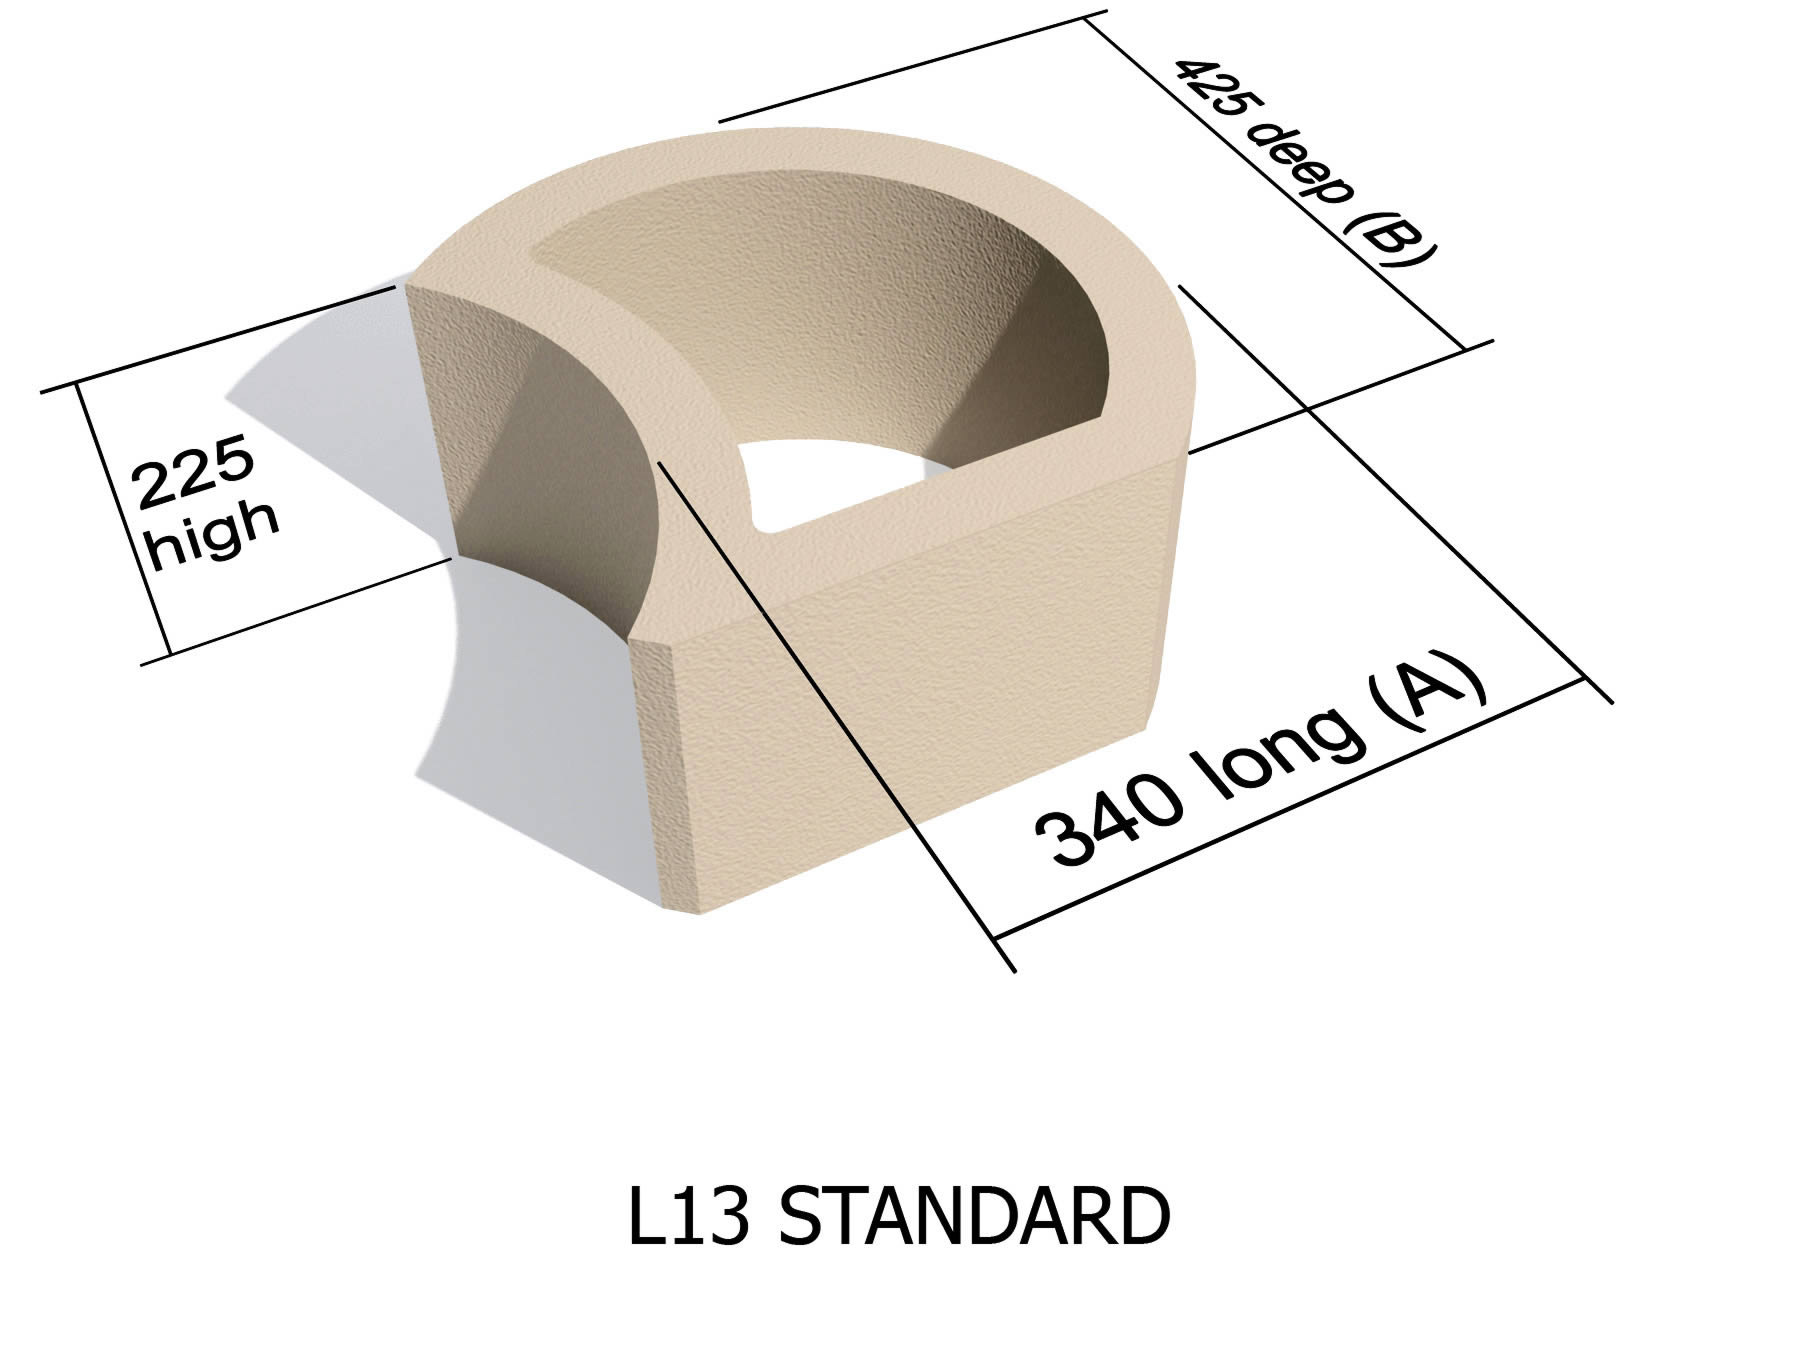 L13 smooth face retaining block